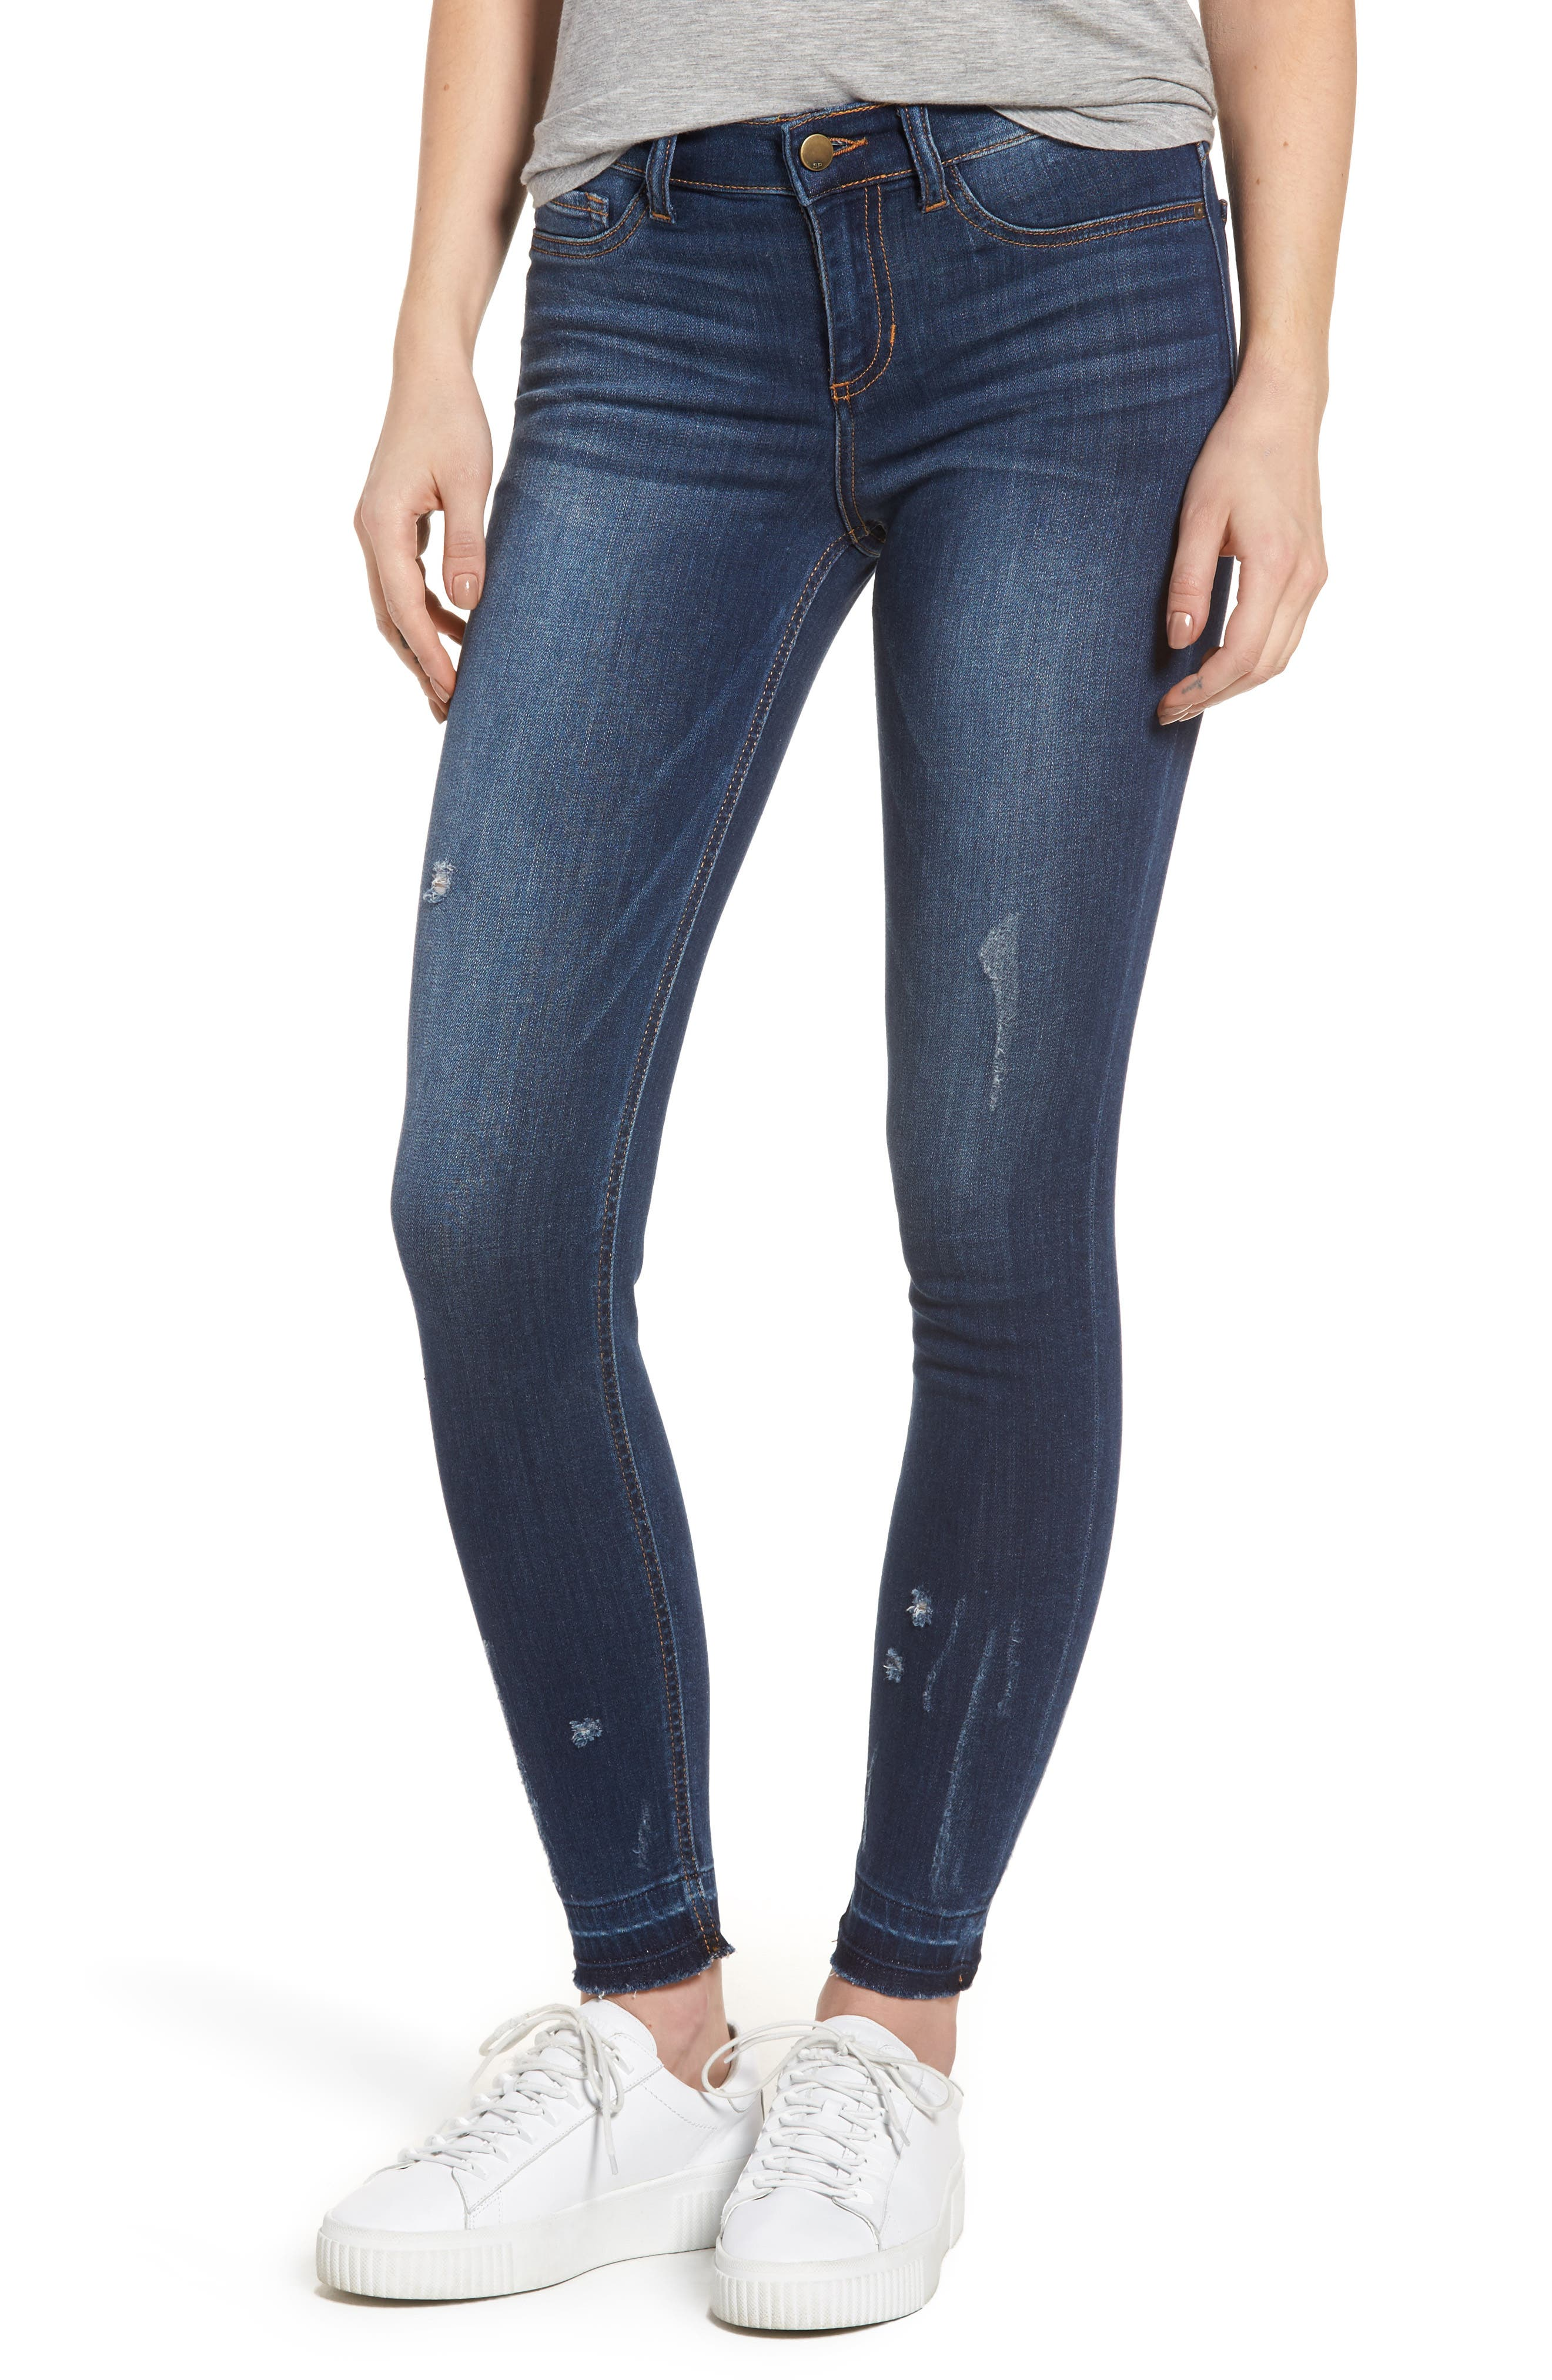 SP Black Skinny Jeans